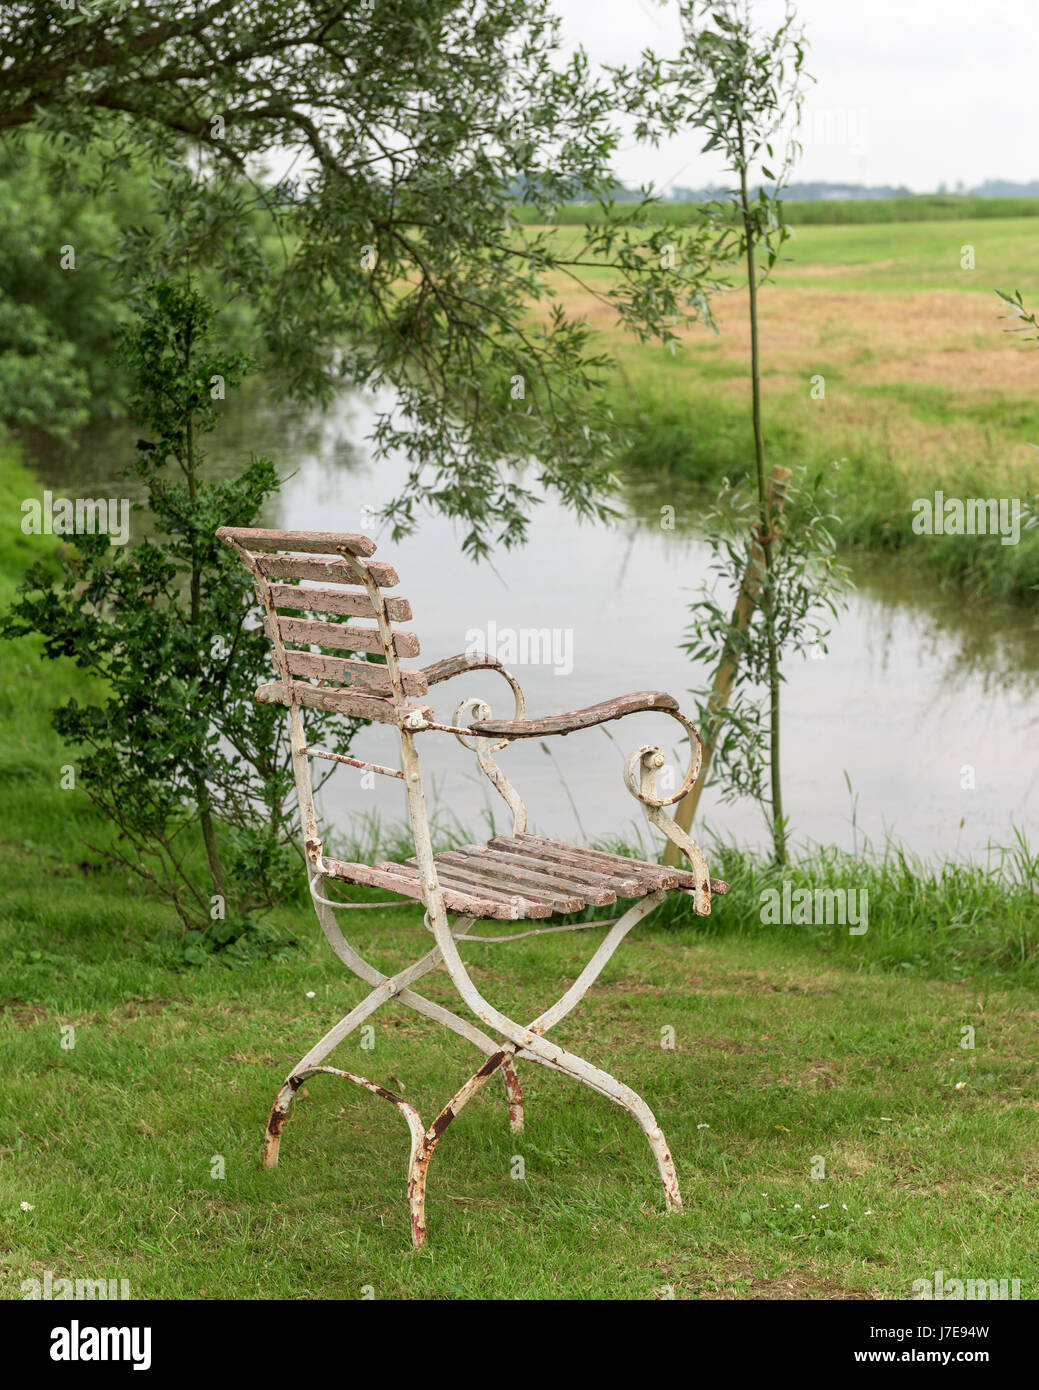 Old chair with peeling paint on riverbank in rural countryside - Stock Image